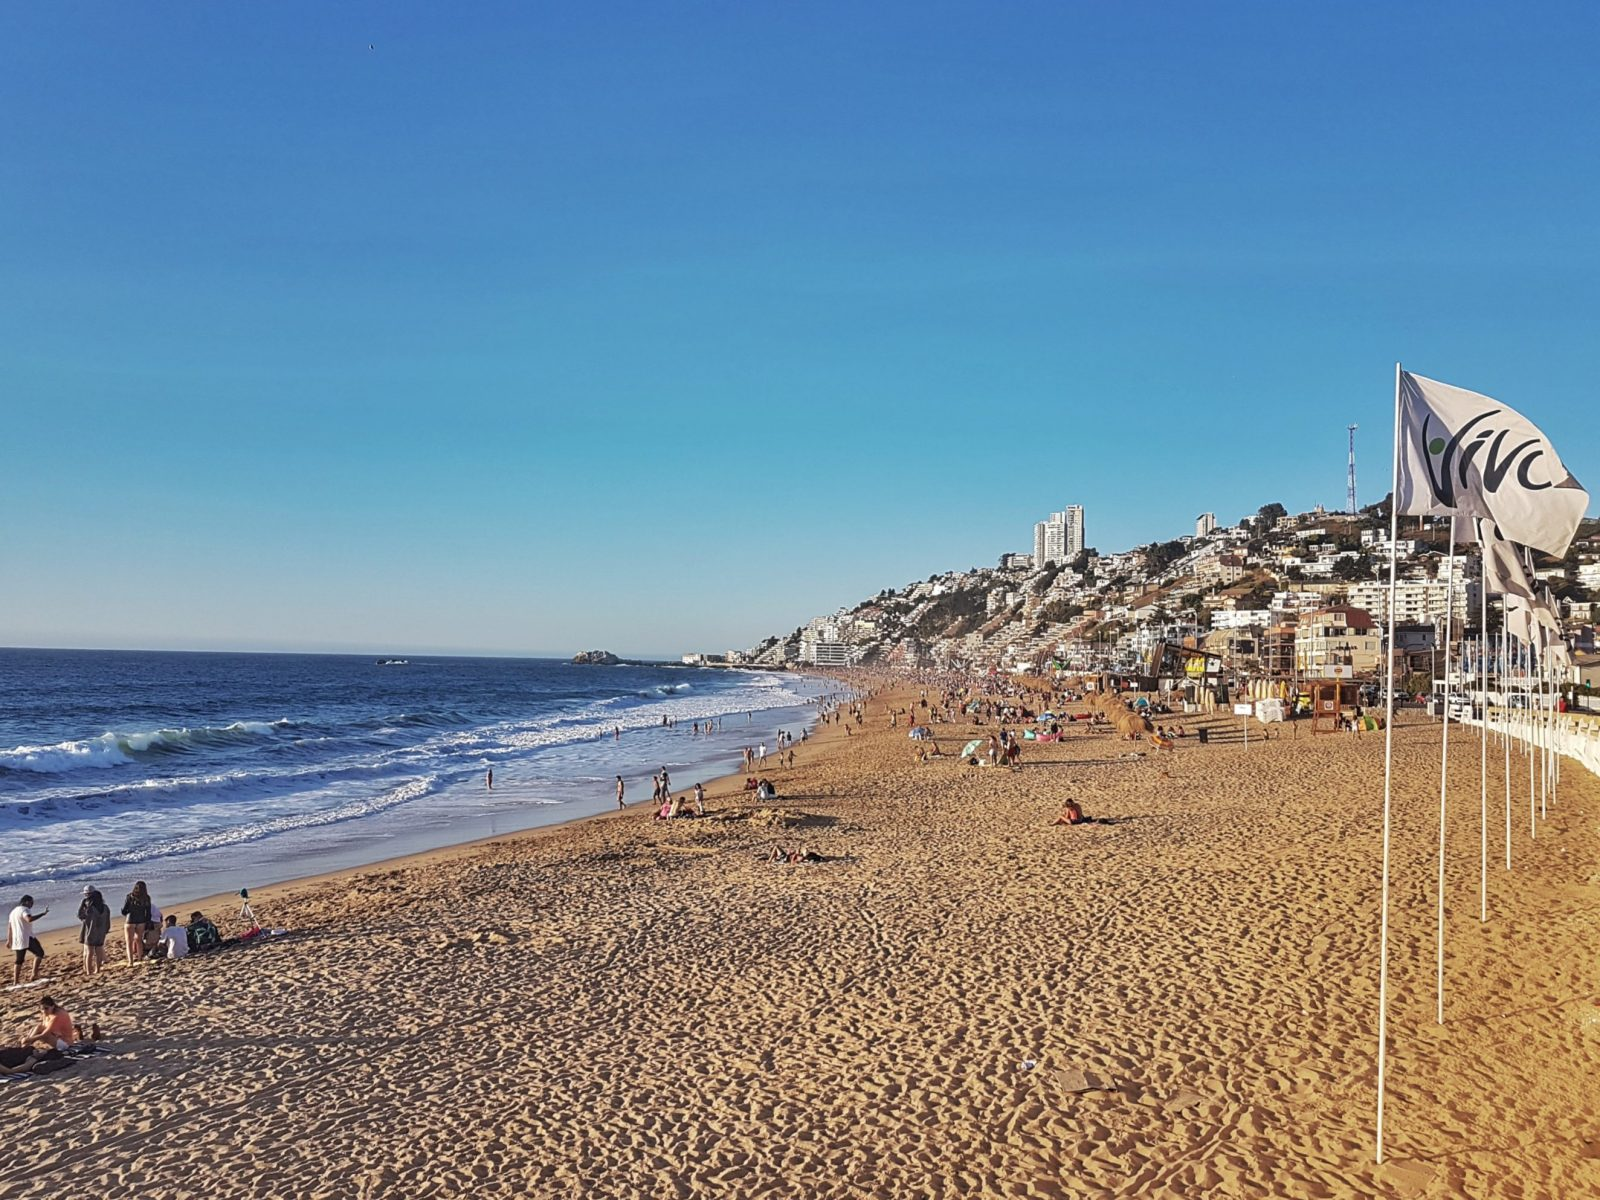 "<img src=""images/"" width=""800"" height=""600"" alt=""valparaíso - Playa Vi  a del Mar 1 1 e1525025159158 - Chile: Valparaíso, Mountains, Murals and Music."">"